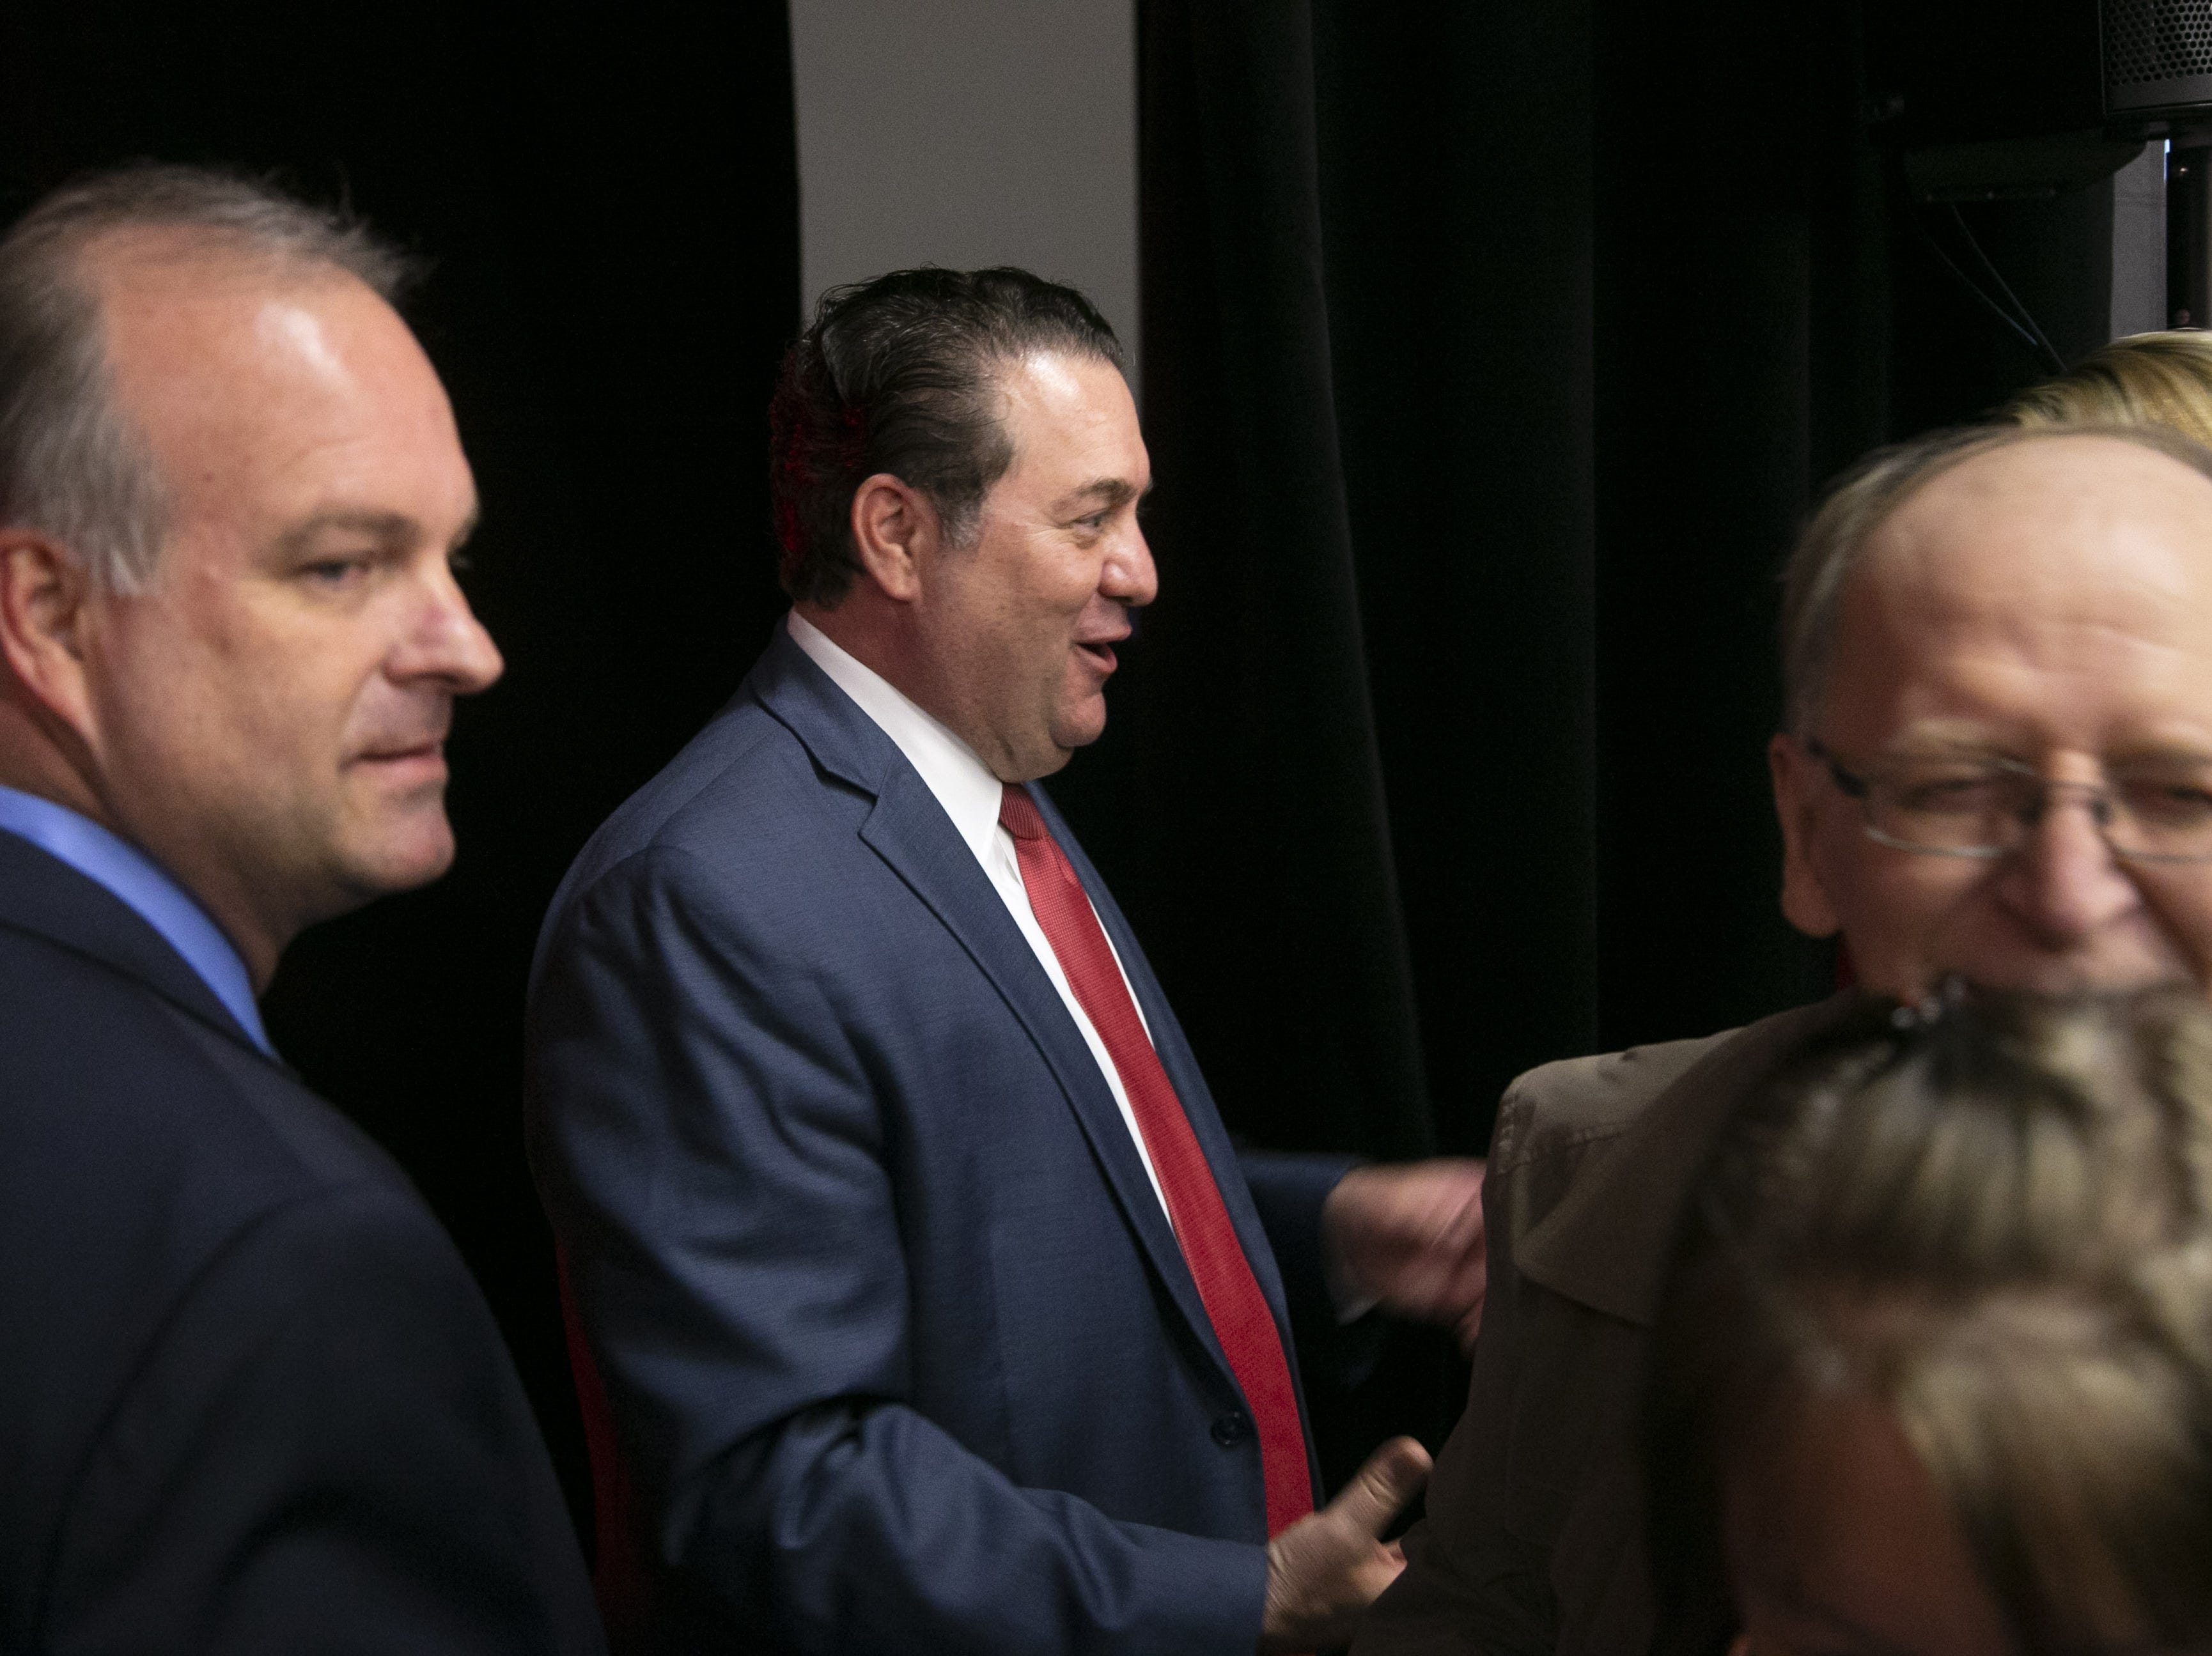 Arizona Attorney General Mark Brnovich speaks with supporters after making his victory speech during the Republican watch party at the DoubleTree Resort in Scottsdale on Nov. 6, 2018.